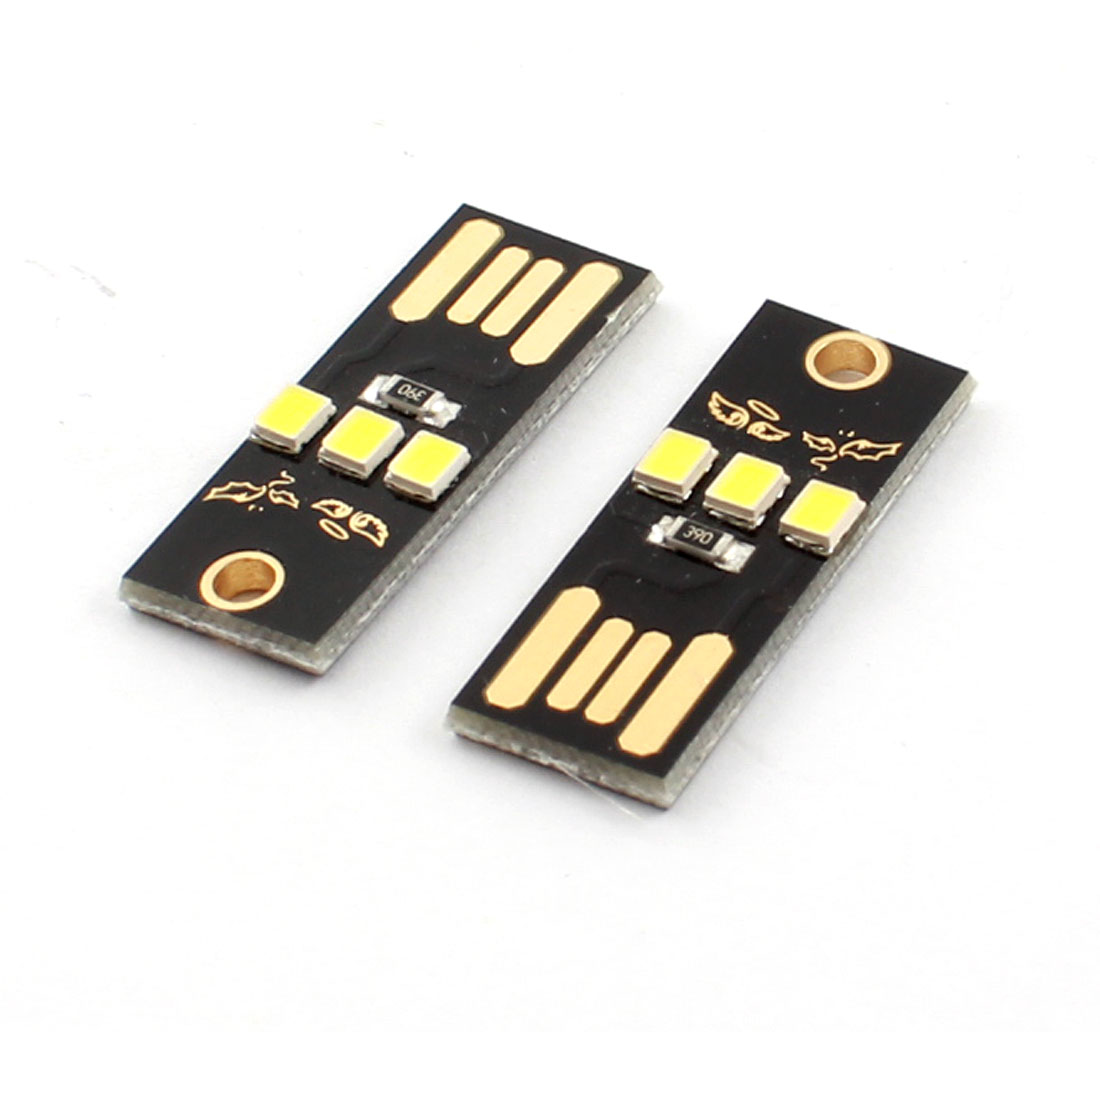 PC Notebook Laptop Keyboard Camping Black Board 0.2W Low Power USB 2.0 White SMD 2835 3LED Mini Light Lamp 2PCS